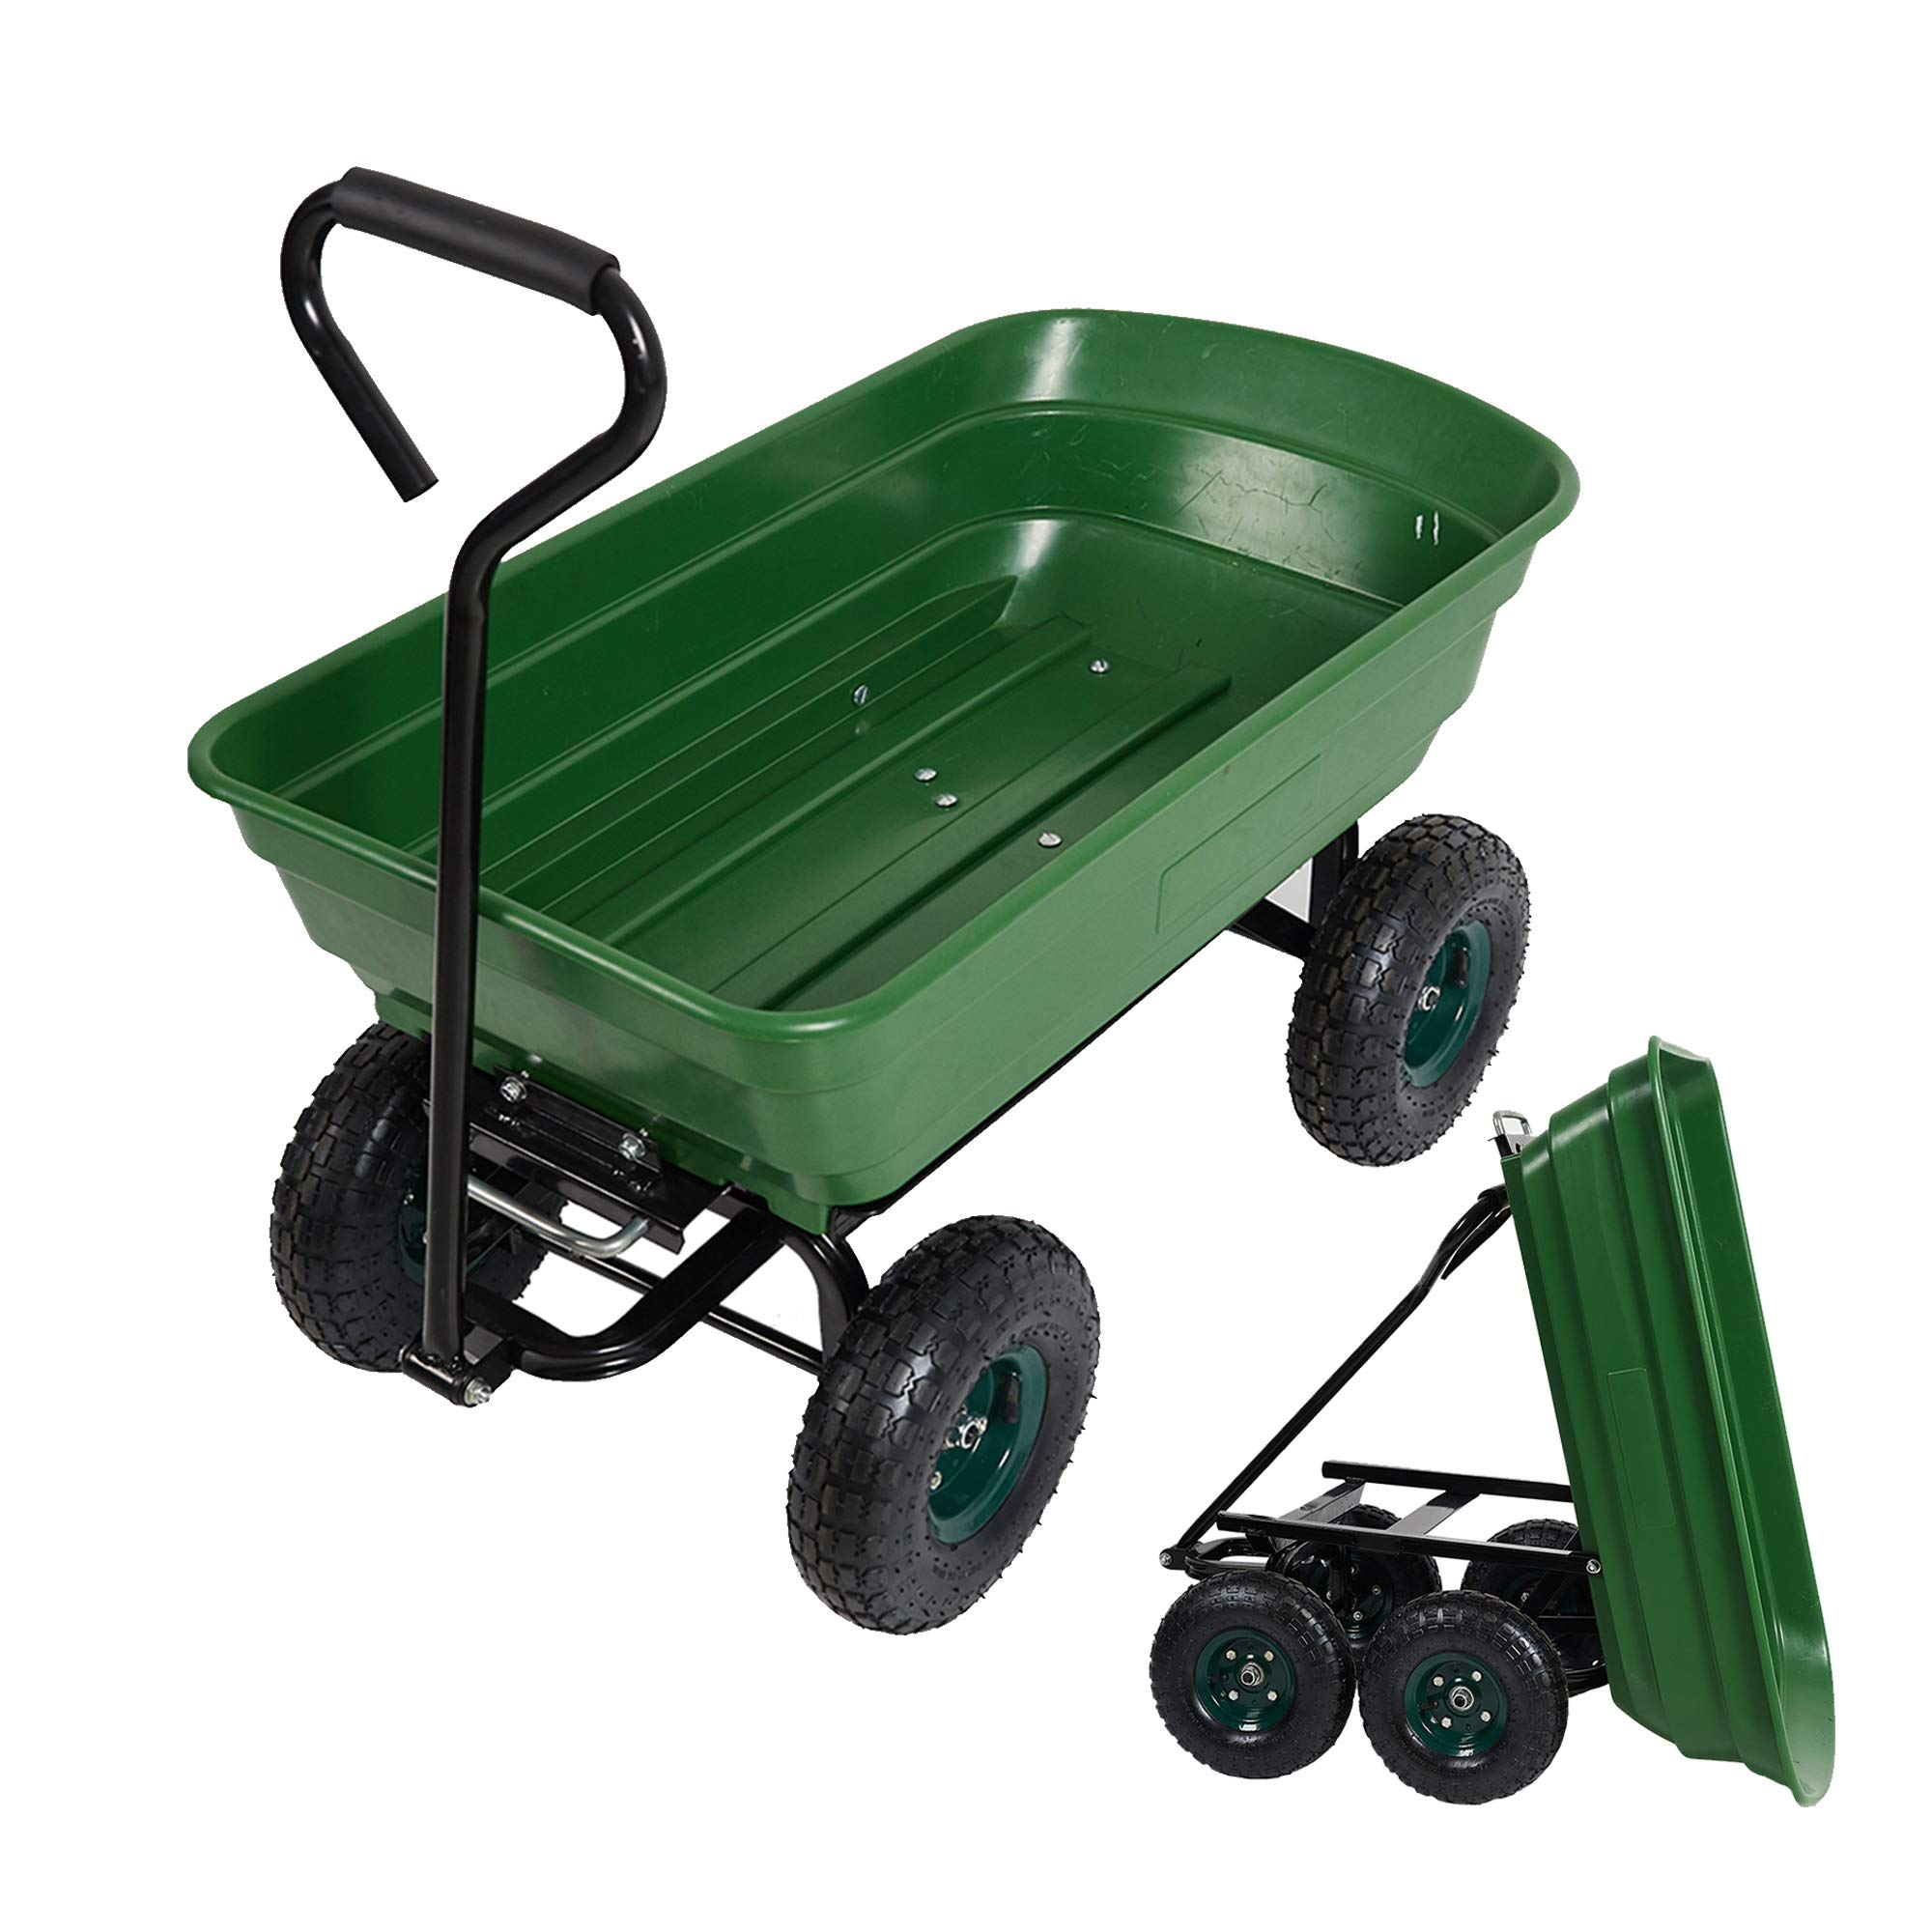 LUCKYERMORE Garden Dump Utility Wagon Cart-550 LB Weight Capacity Multifunctional Wheelbarrow Sturdy Plastic Yard Lawn Cart for Wood and Cargo Carrier by LUCKYERMORE